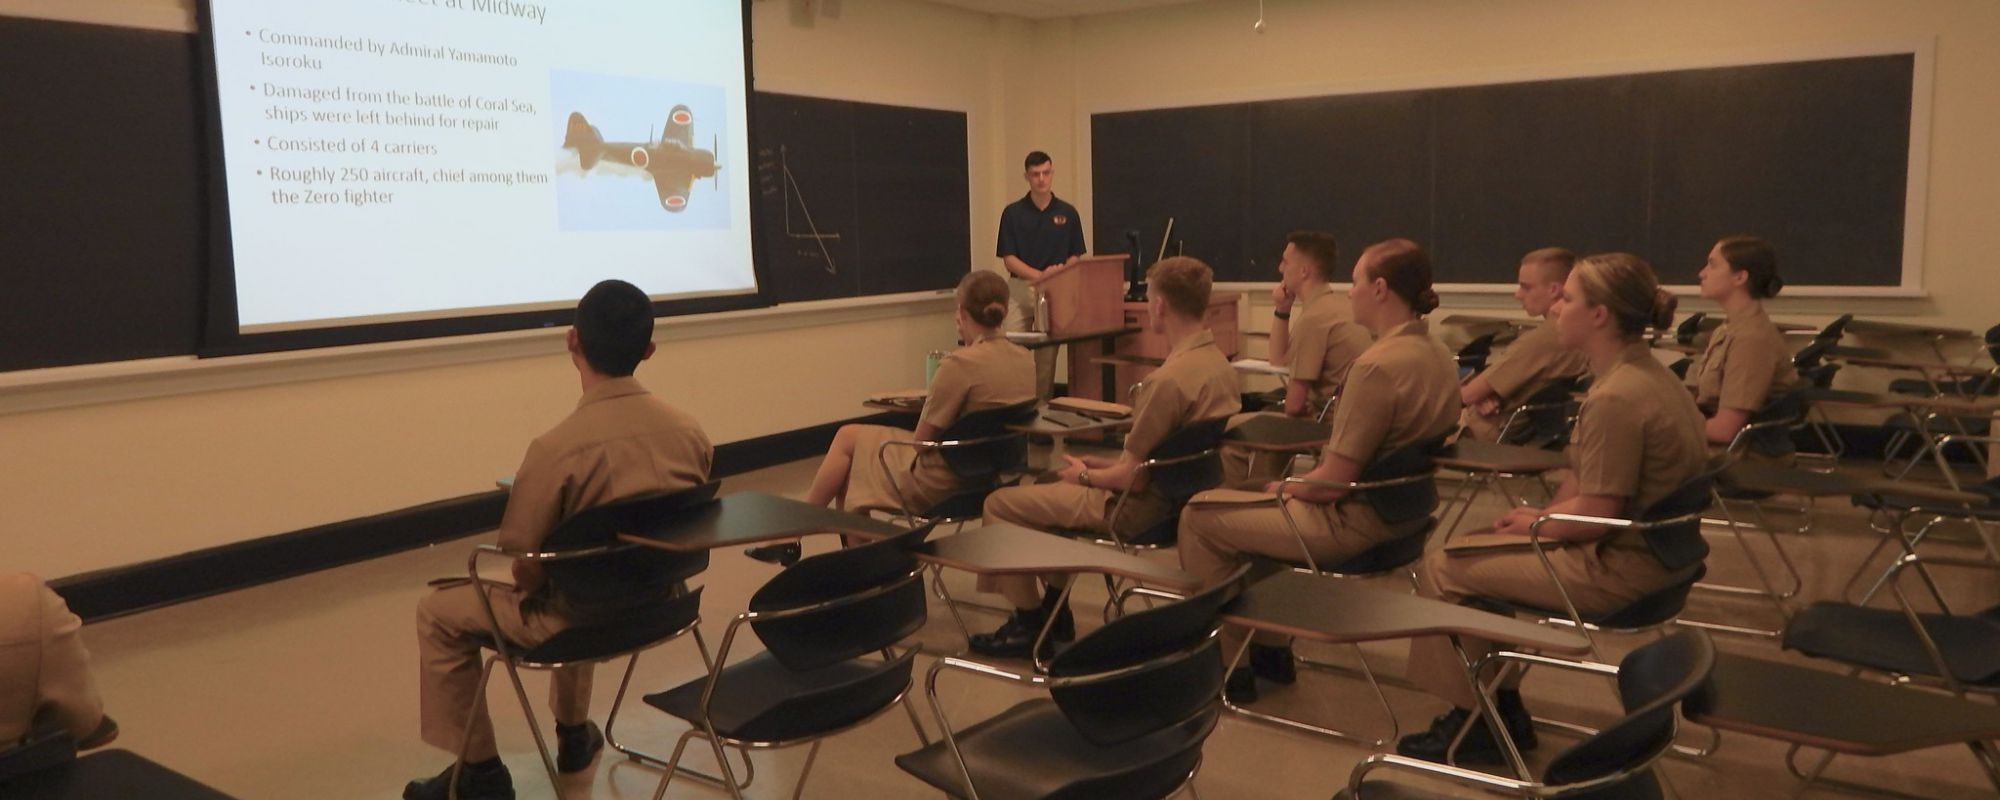 NROTC students in classroom